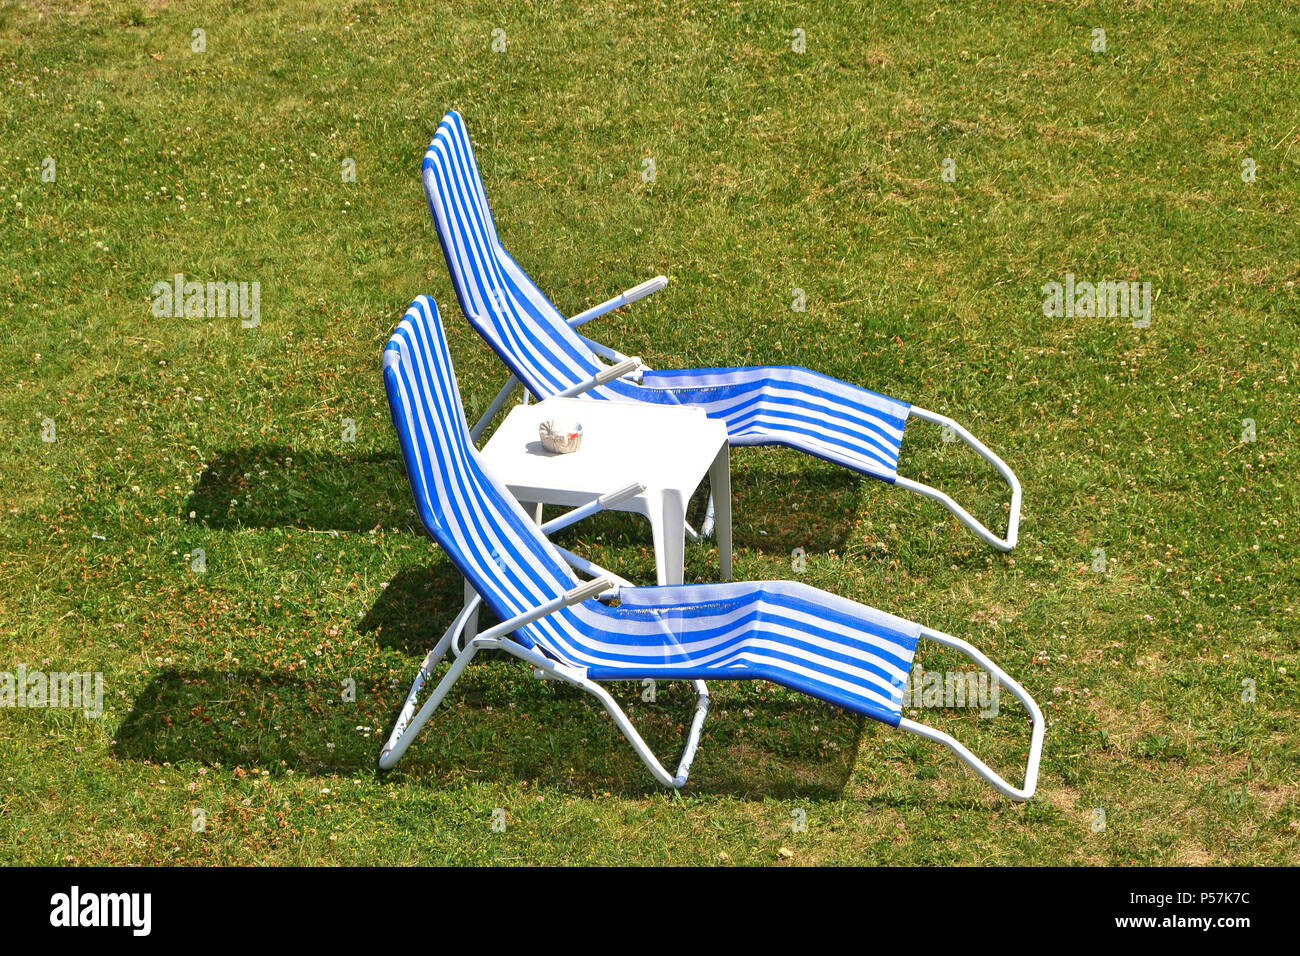 Deckchairs on a meadow in summer - Stock Image